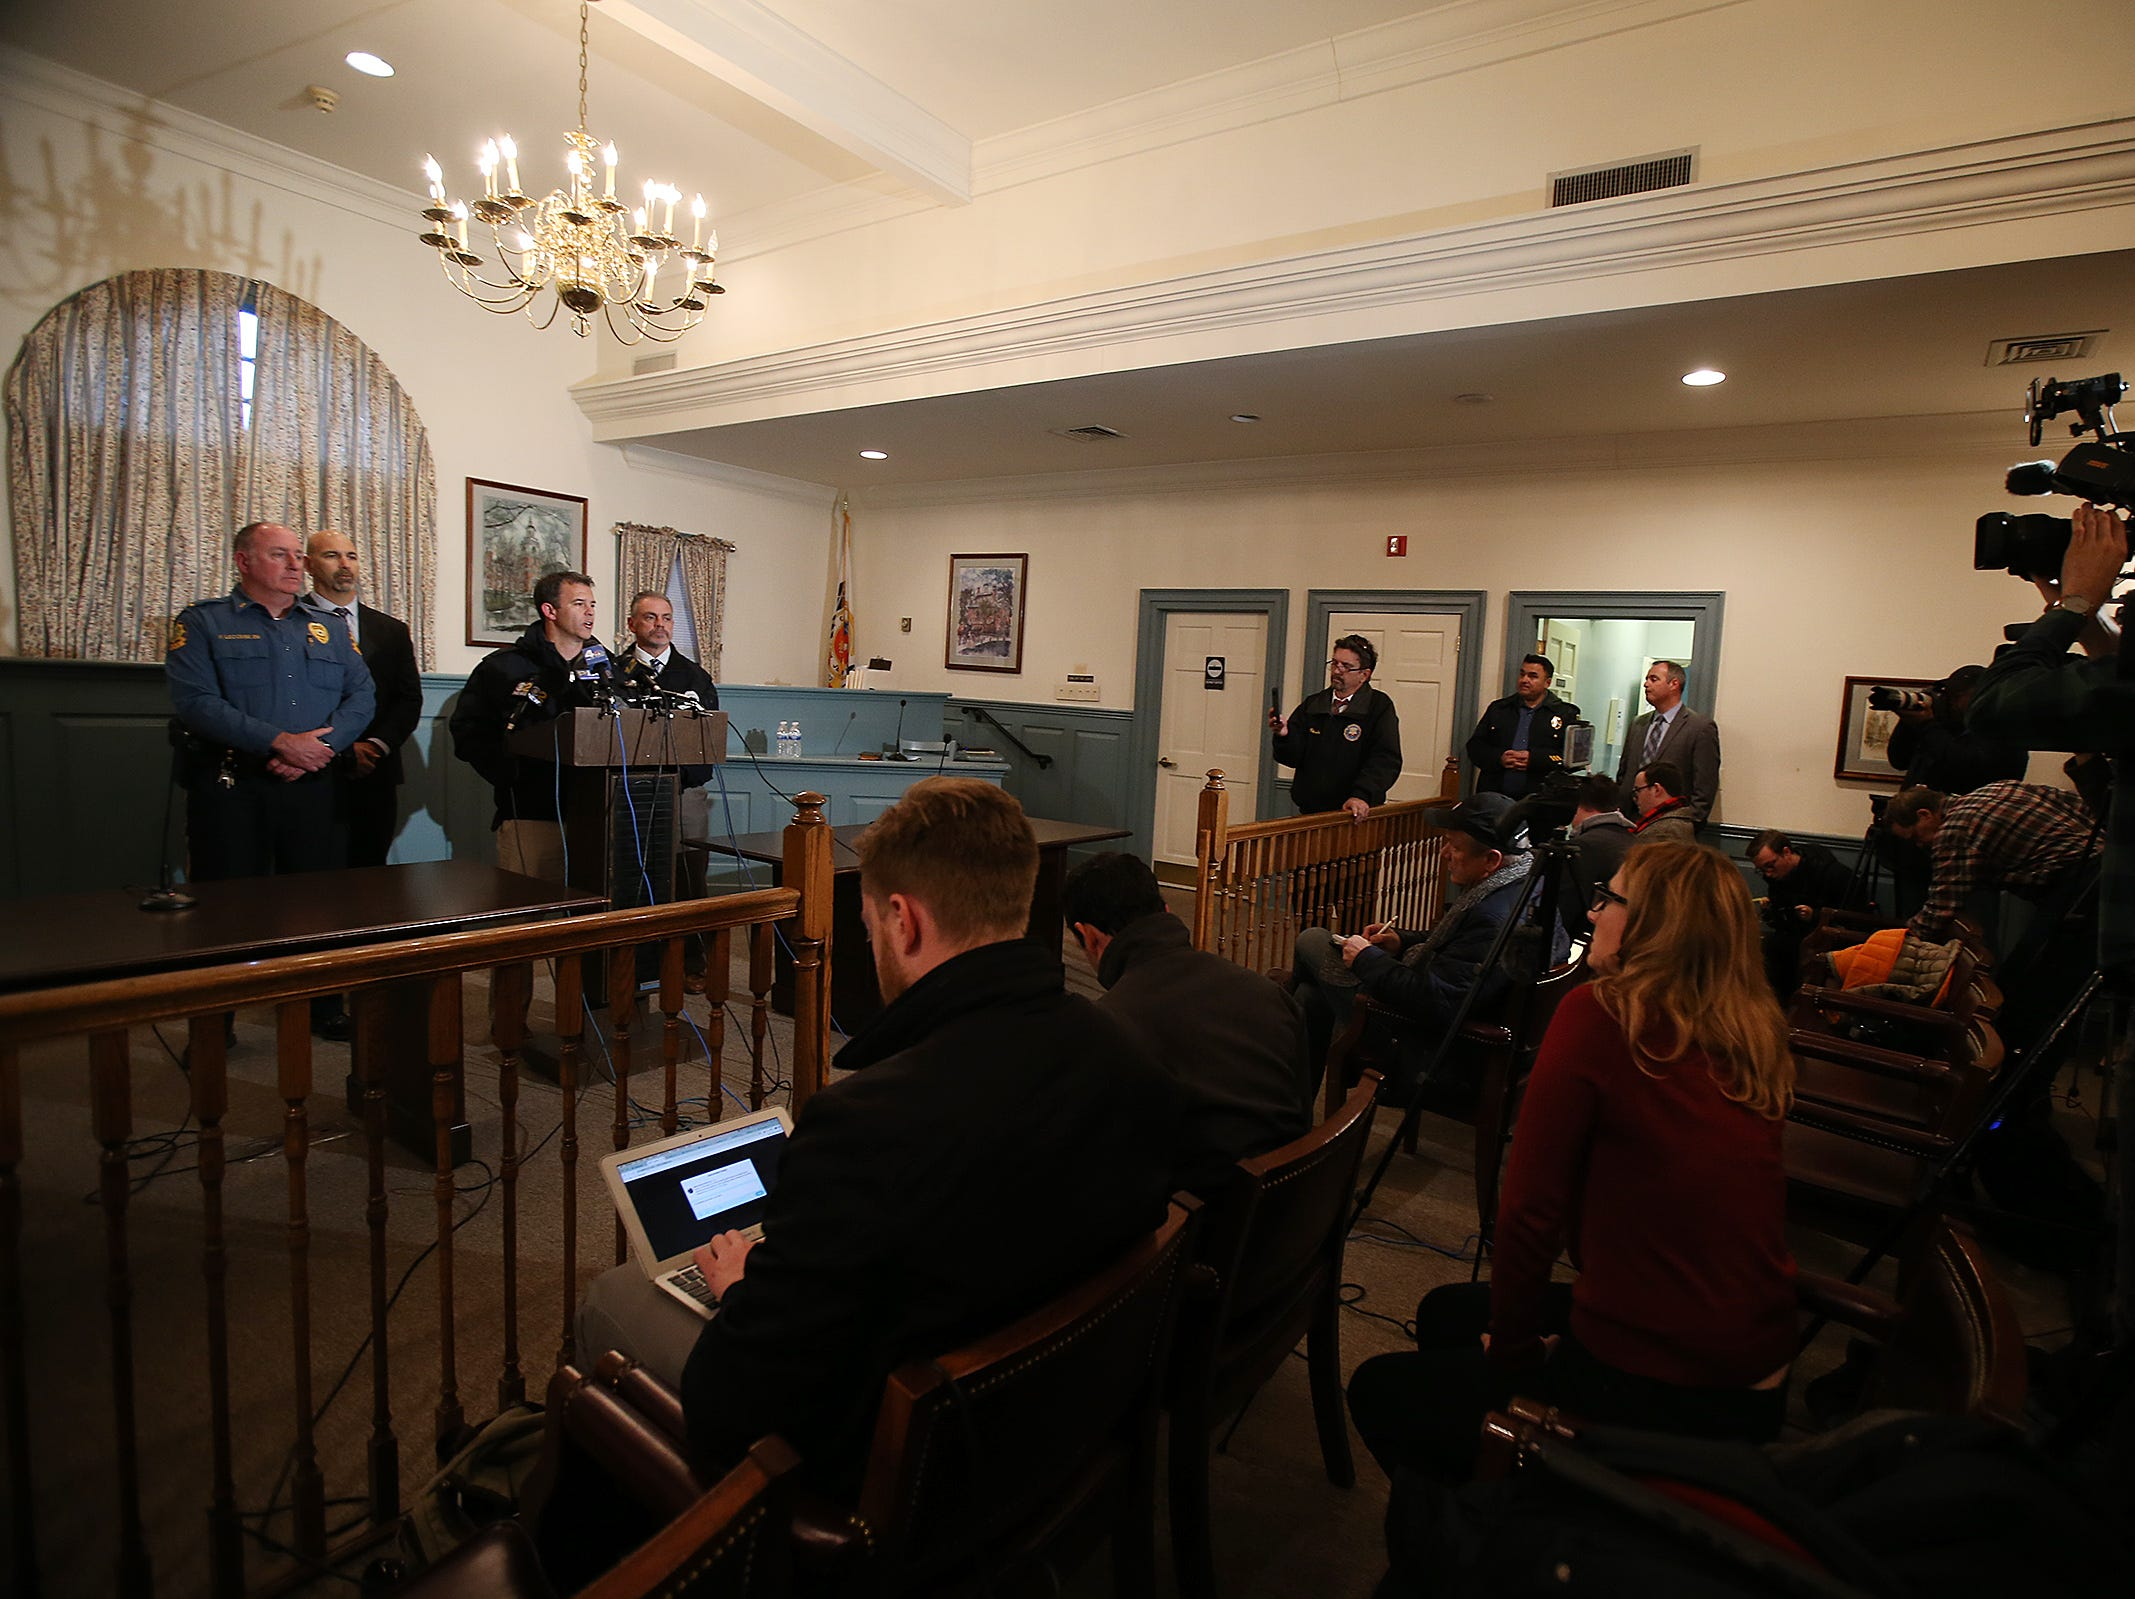 Monmouth County Prosecutor Christopher Gramiccioni holds a press conference to confirm four fatalities involved in the Colts Neck fire at 15 Willow Brook Road in Colts Neck, NJ Tuesday November 20, 2018. Behind him stand (L-R) Colts Neck Acting Police Chief Frank Leccese, Colts Neck Mayor JP Bartolomeo and Monmouth County Chief of Detectives John G. McCabe, Jr.